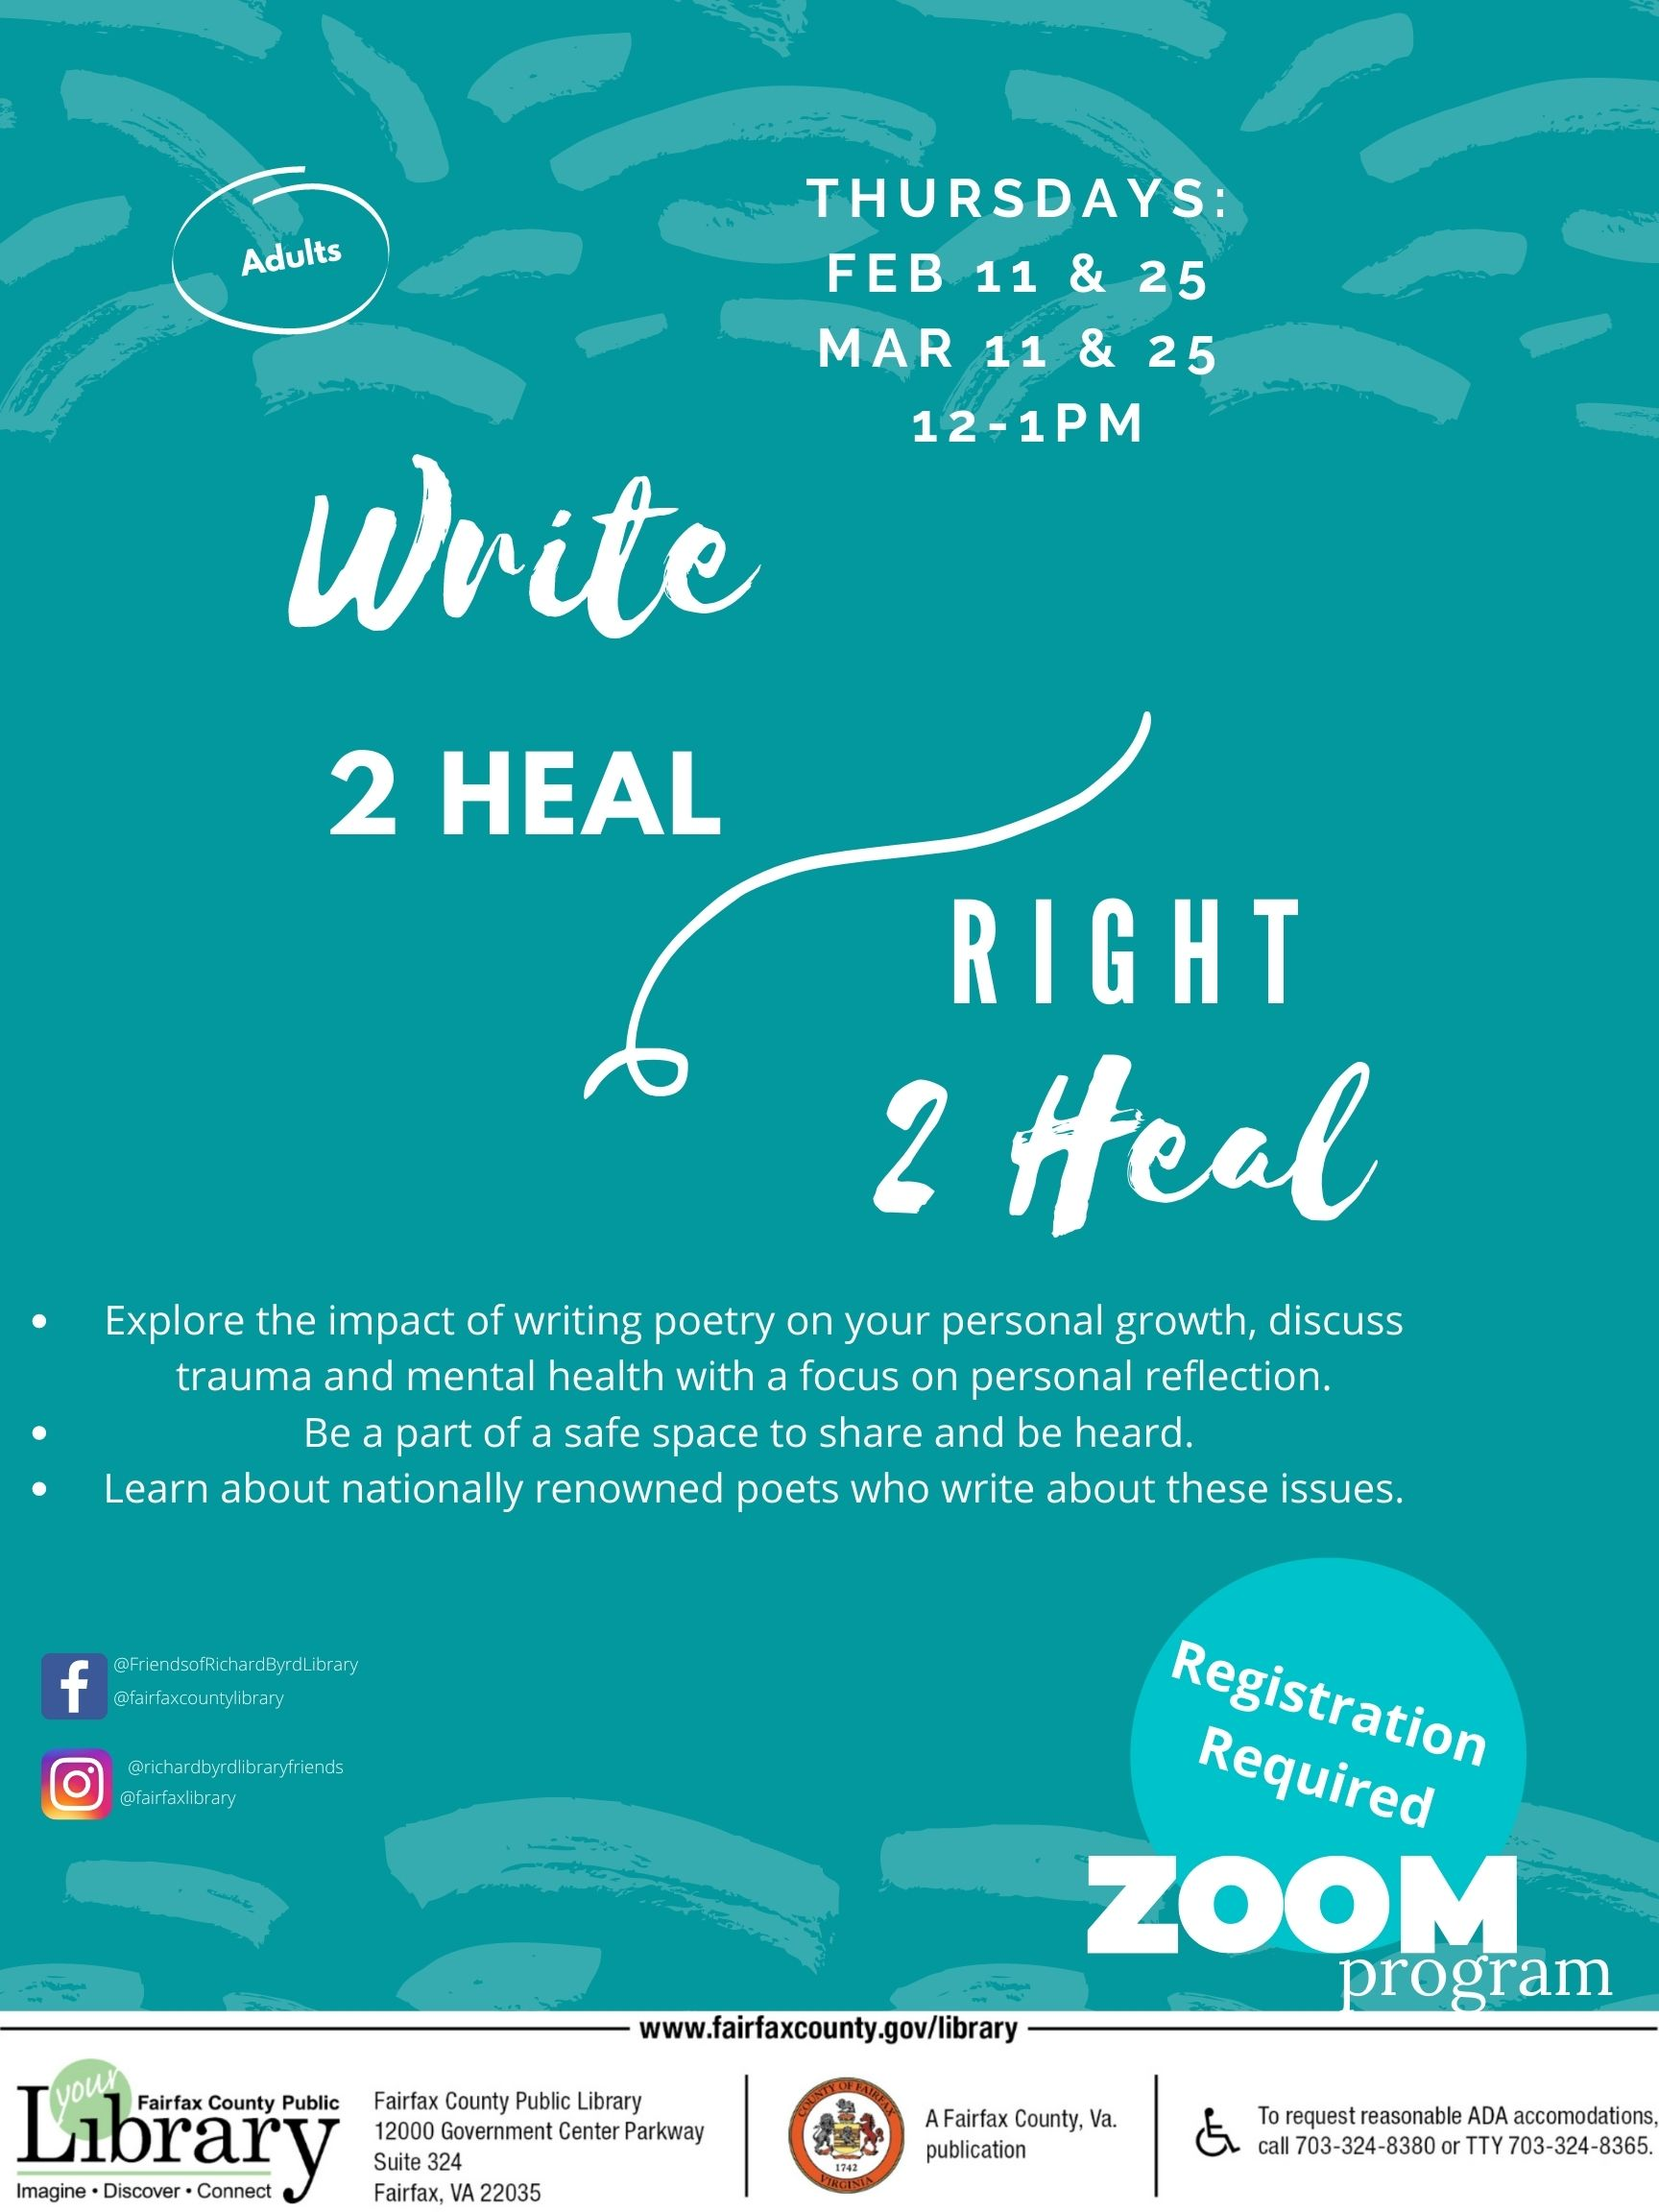 Write 2heal / Right 2heal